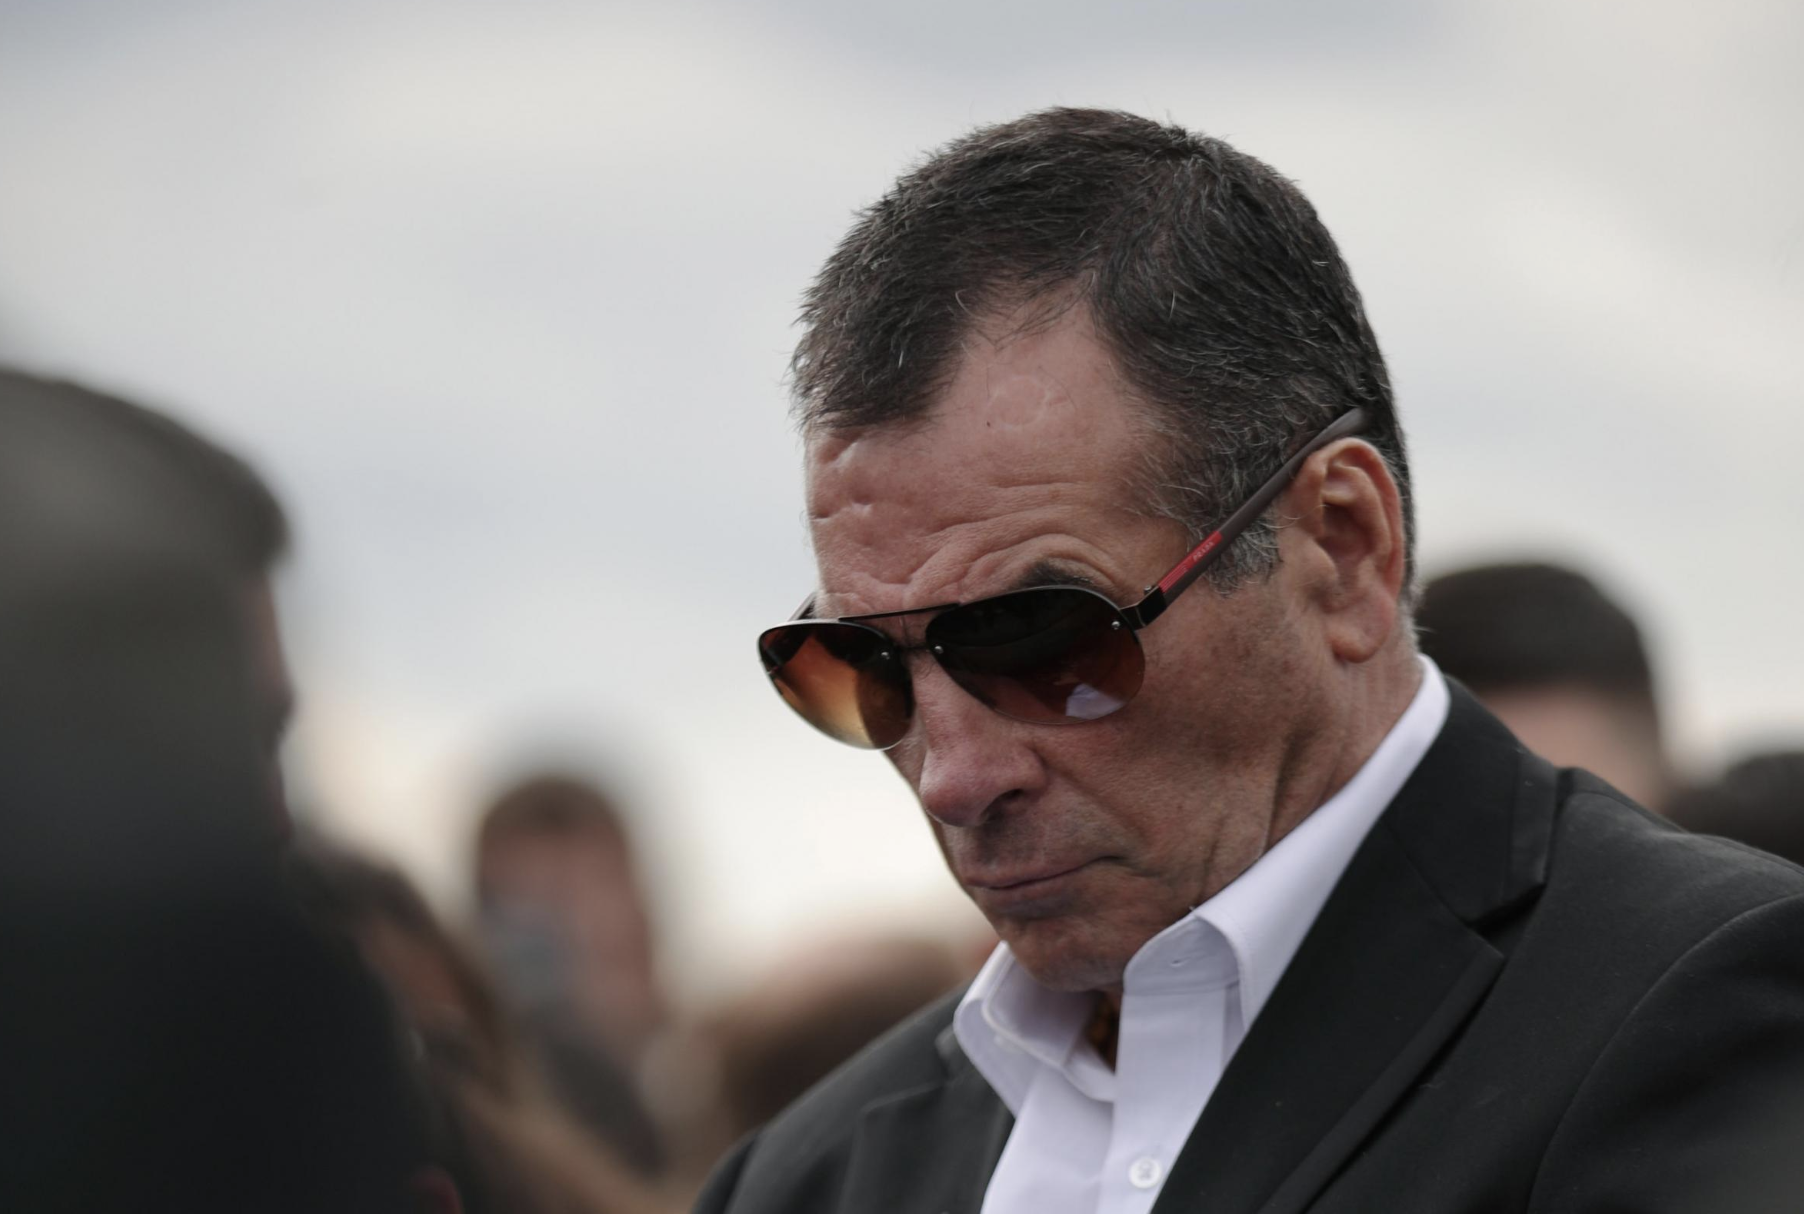 Paddy Doherty Looking Mournful